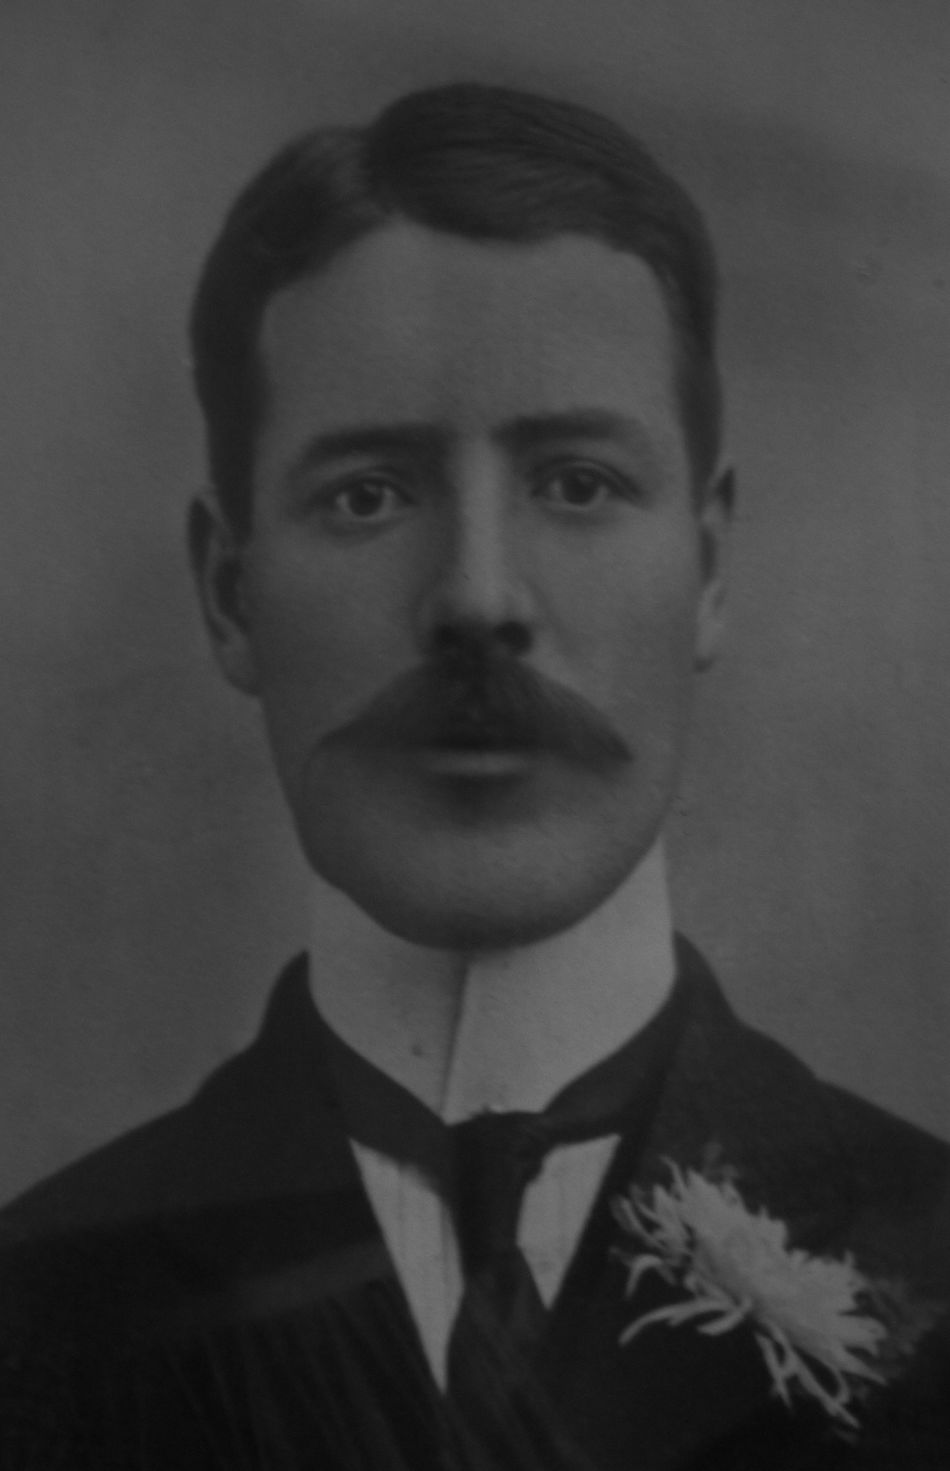 1900s Adult Close-up Day Formal Portrait Front View Headshot Human Body Part Human Face Indoors  Lifestyles Looking At Camera Men Old Photo One Man Only One Person One Young Man Only People Portrait Real People Turn Of The Century Young Adult